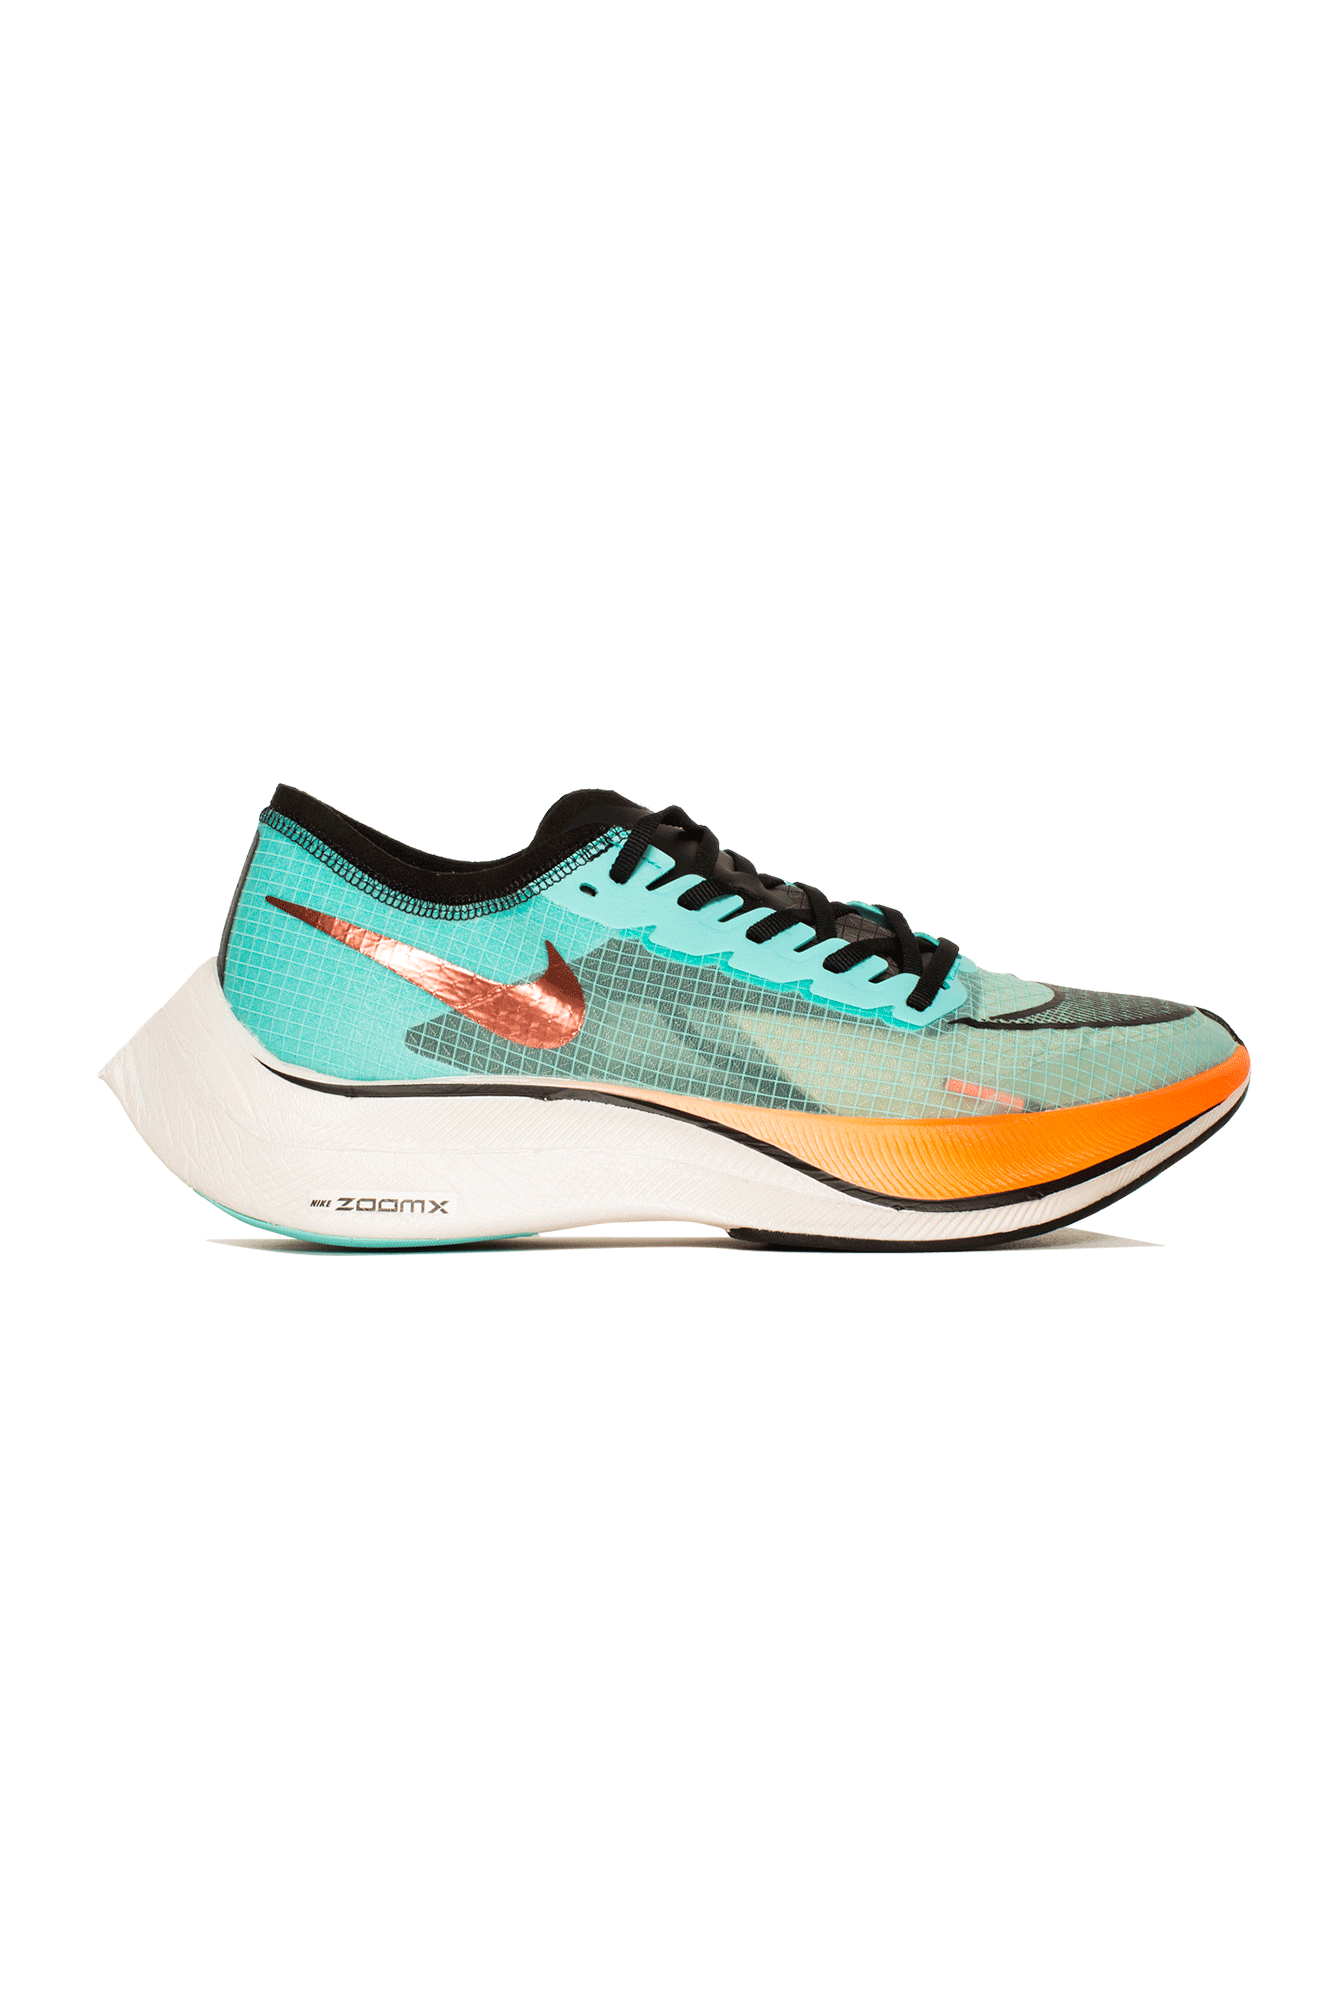 Zoomx Vaporfly Next% Hkne Red